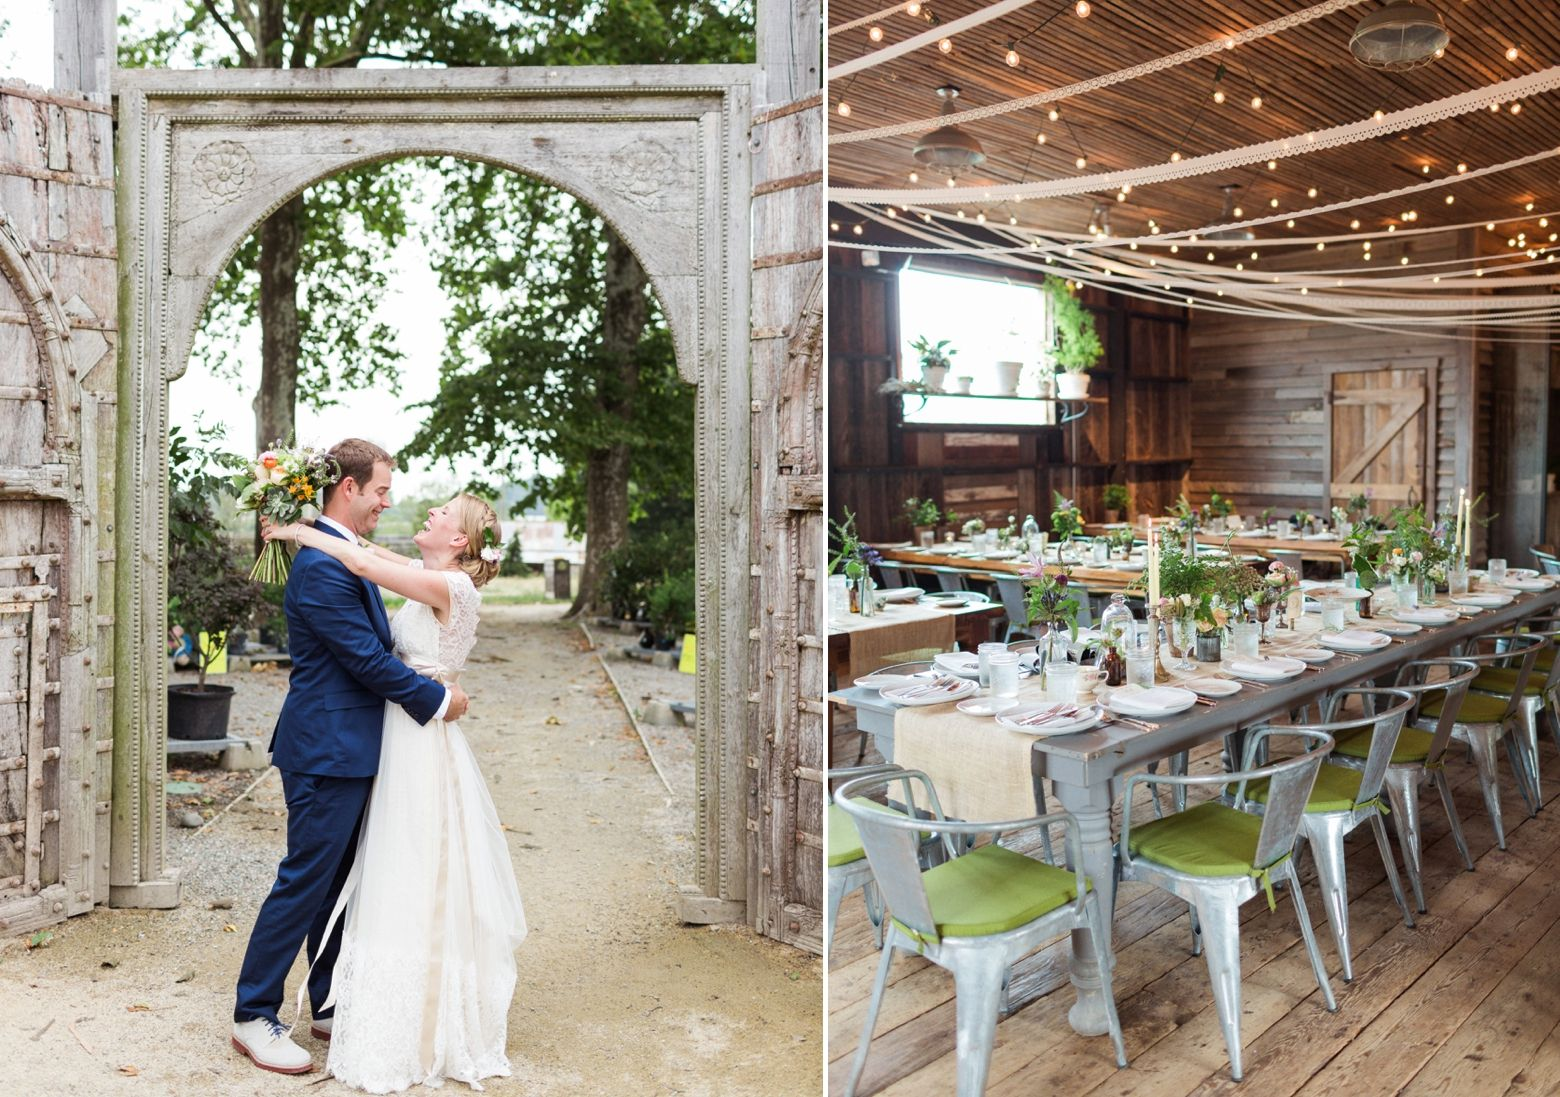 Elegant Small Cheap Wedding Venues Near Me: 30 Best Rustic, Outdoors, Eclectic, Unique Beautiful